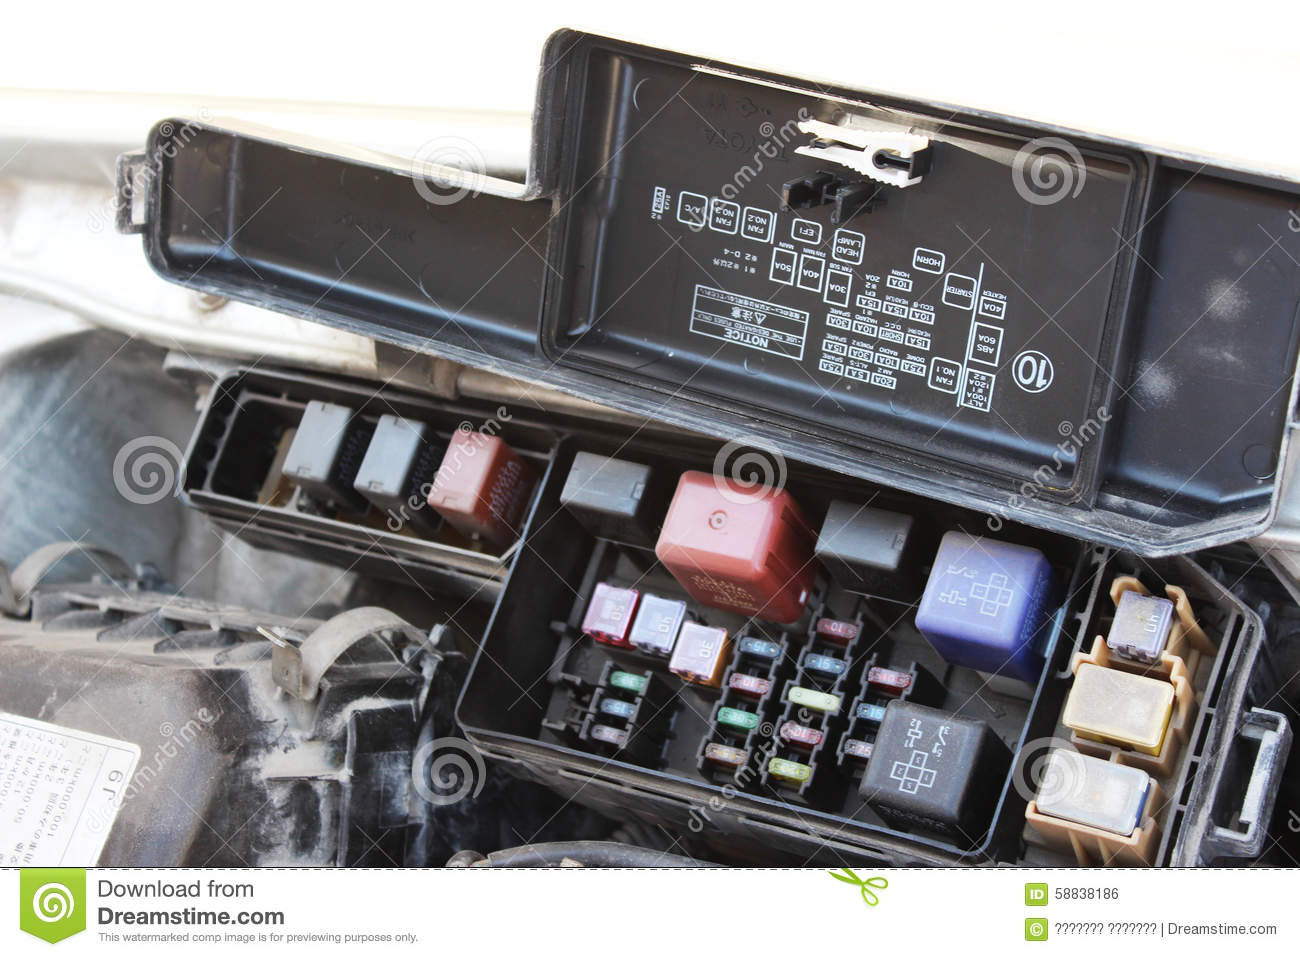 fuse box under hood car 58838186 under hood fuse box cartridge fuse box \u2022 wiring diagrams j  at panicattacktreatment.co